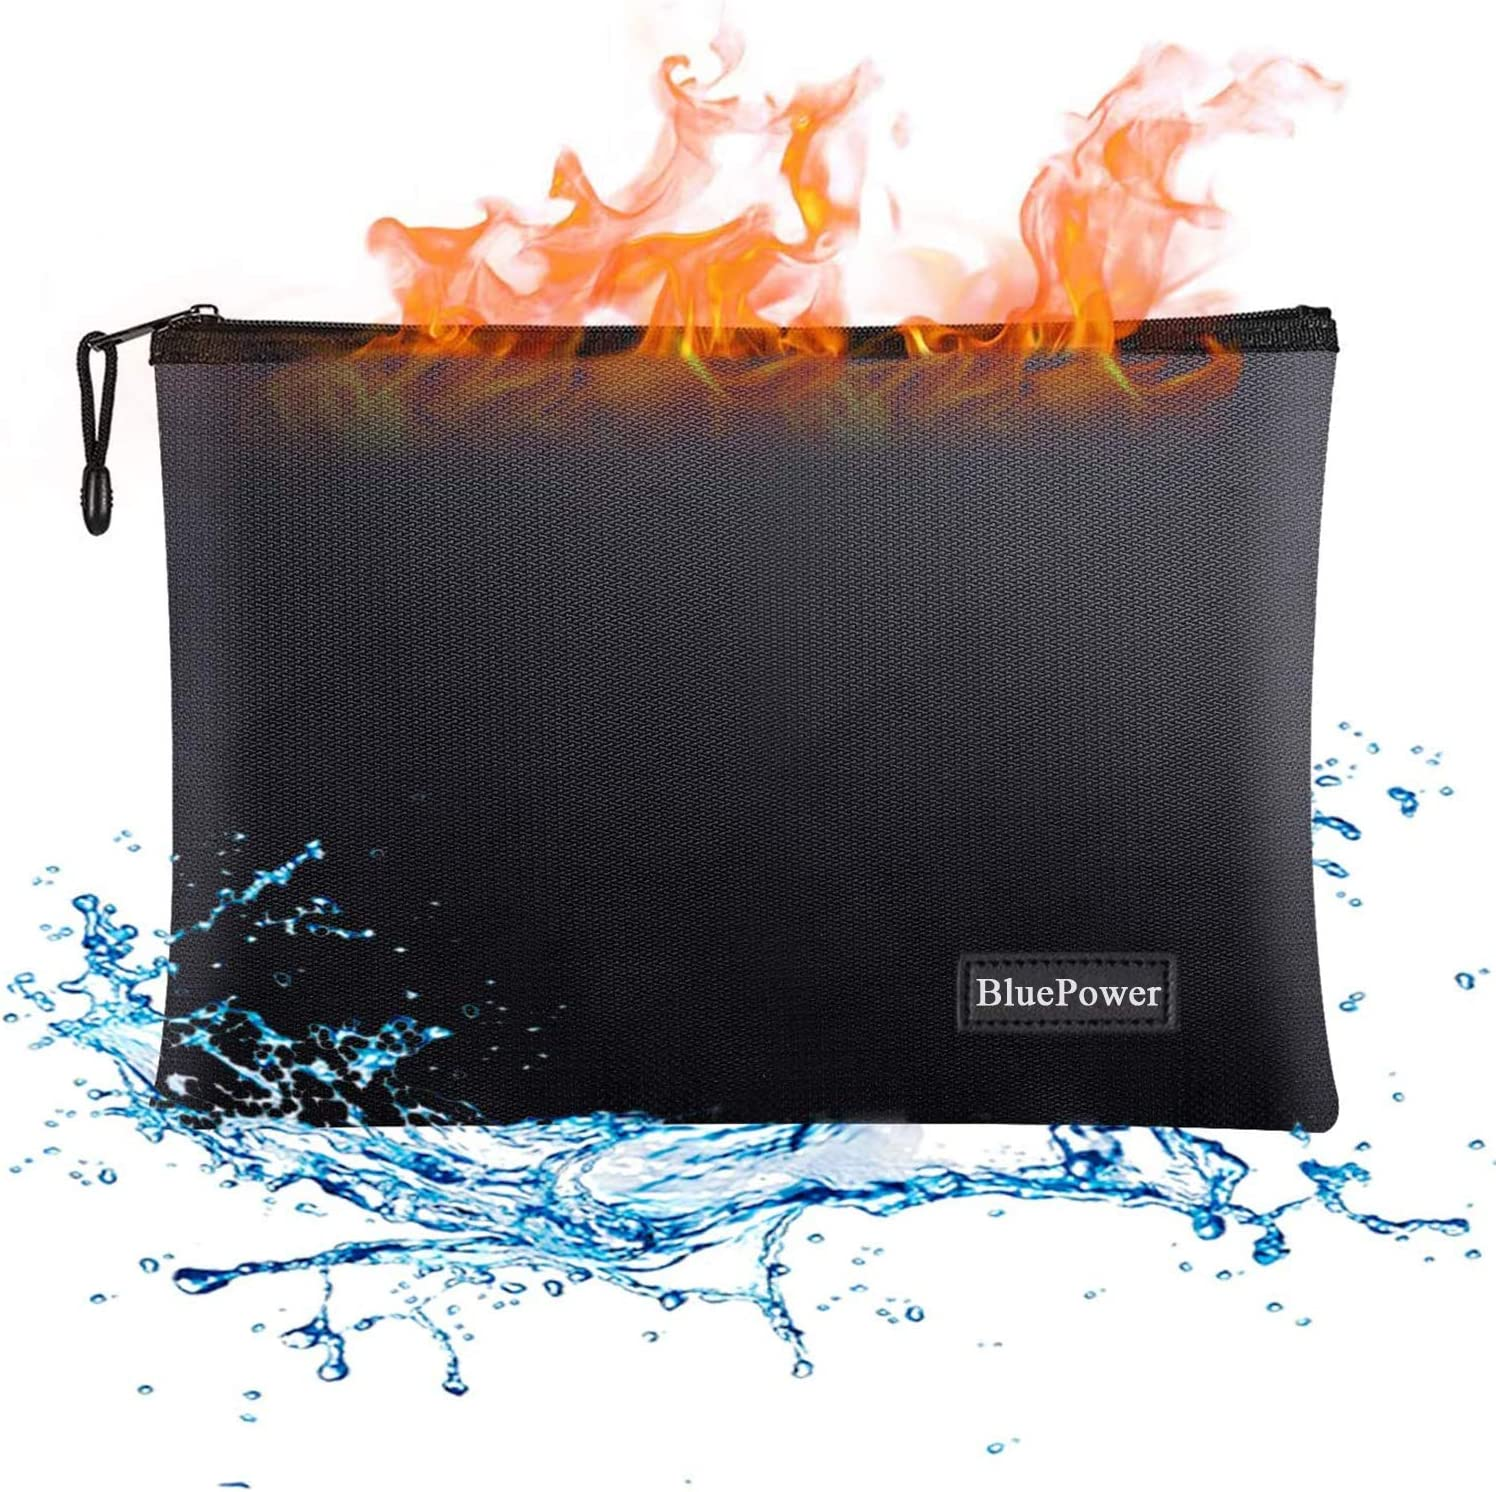 """Fireproof Document Bags,15""""x 11"""" Large Waterproof and Fireproof Folder Money Bag,Fire & Water Resistant Safe Storage Pouch Envelope with Zipper for A4 Document Holder,File,Cash,Tablet,Passport,Jewelry"""